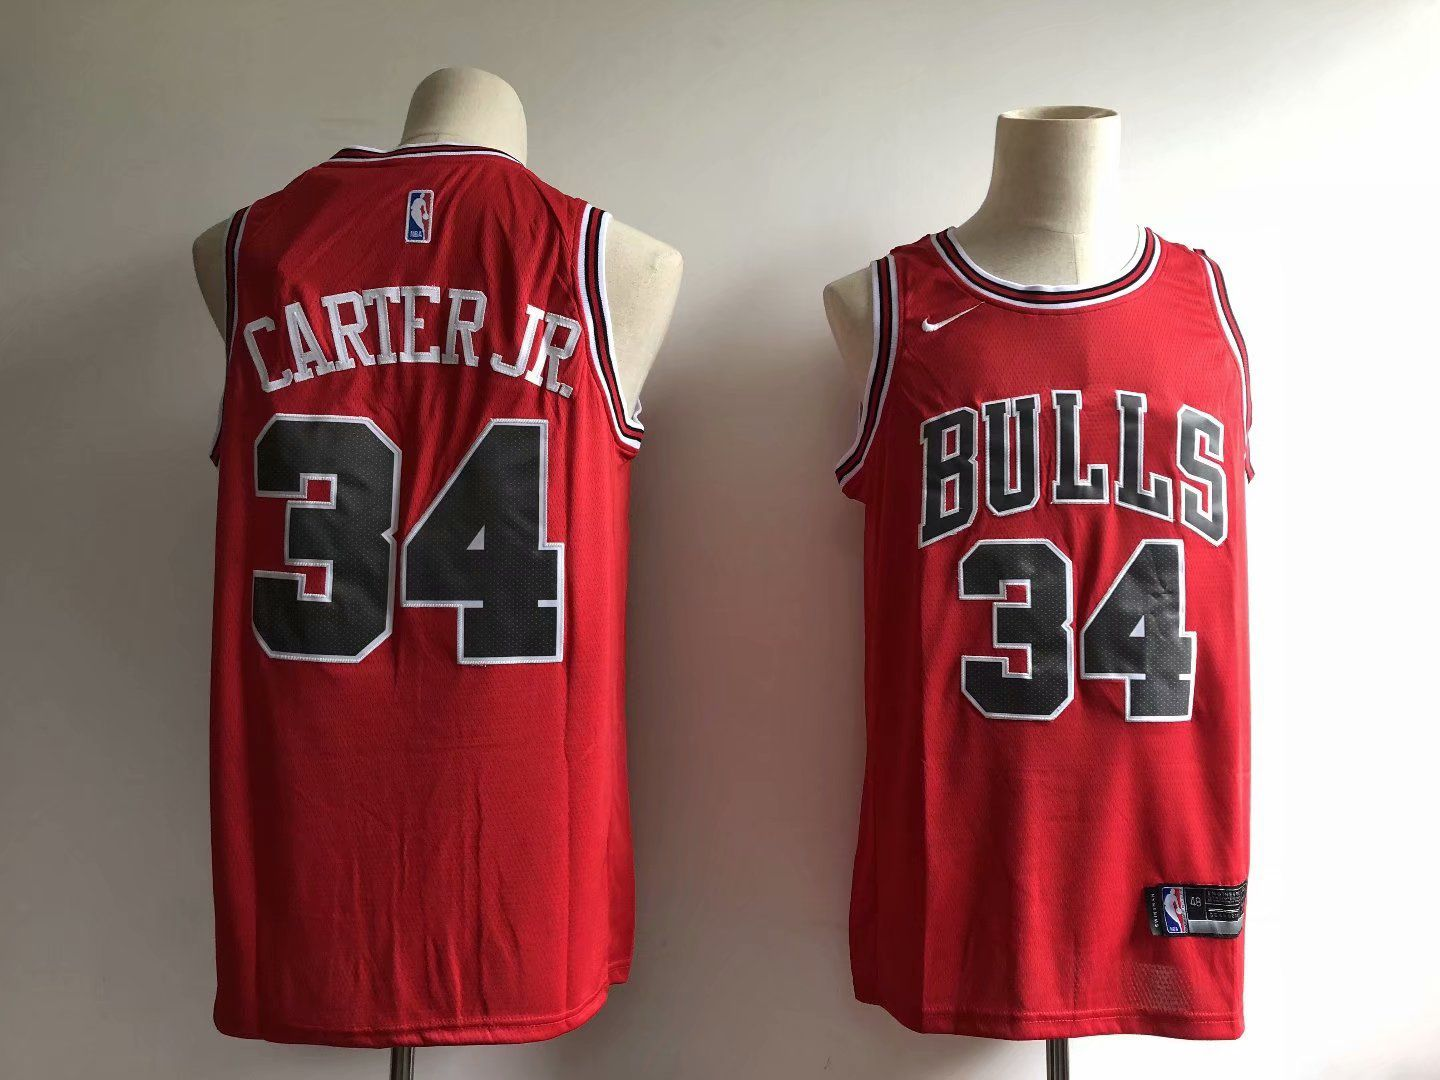 Men Chicago Bulls 34 Carter jr Red Game Nike NBA Jerseys